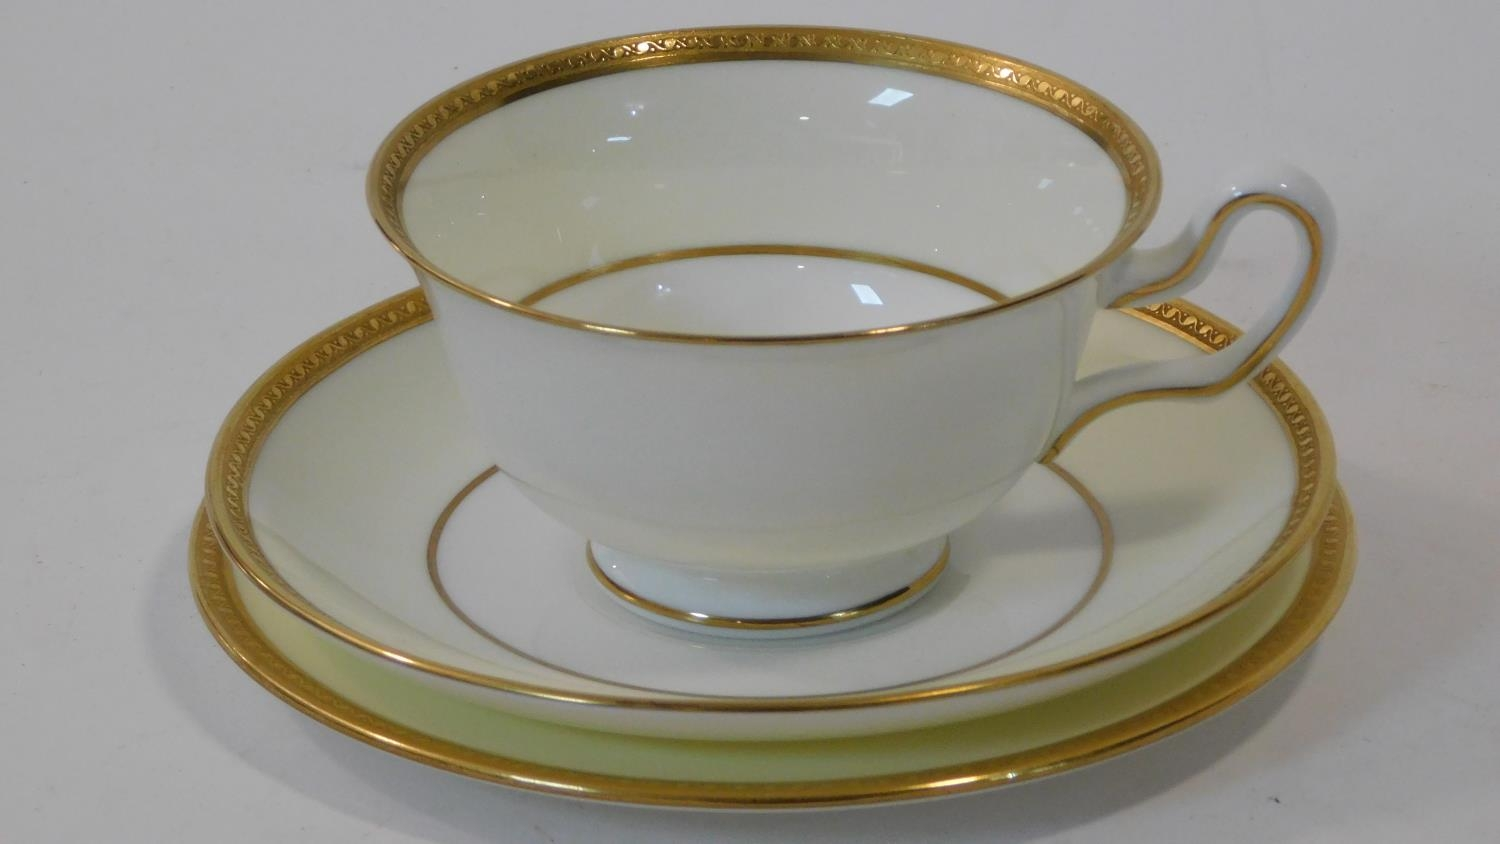 A six person part scrolling gilded design porcelain Wedgwood coffee set, pattern number W4249. - Image 3 of 12